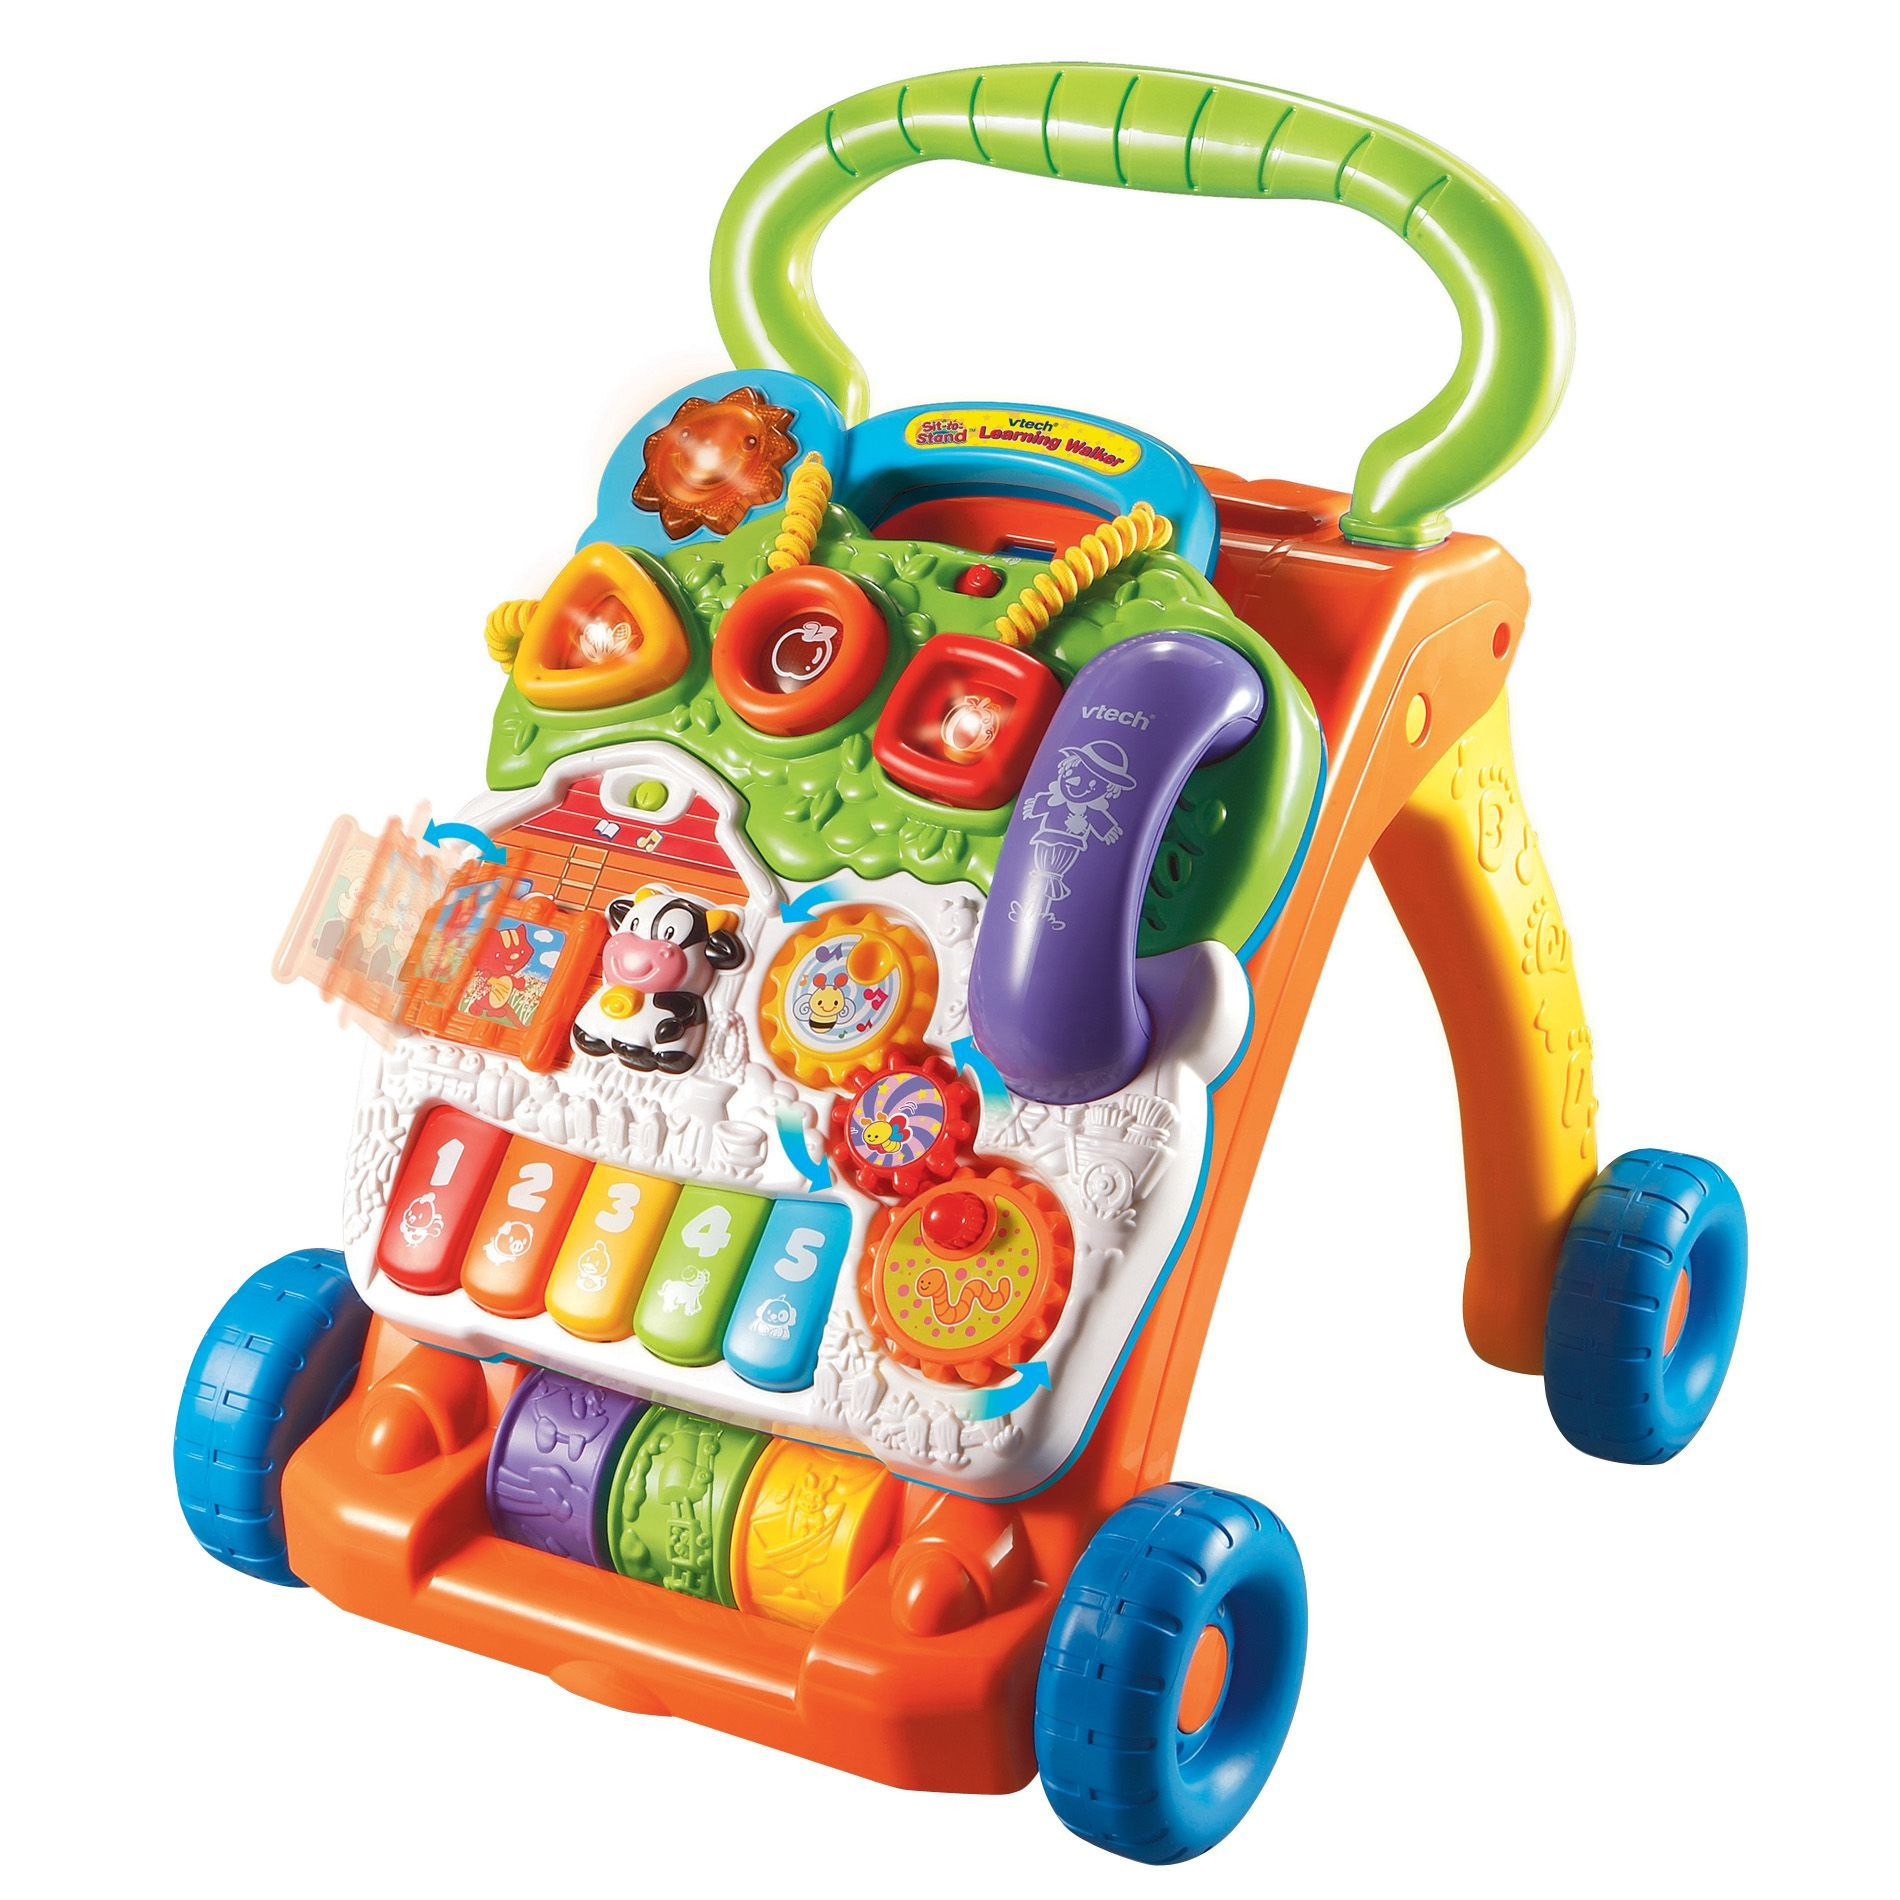 V-Tech Sit-to-Stand Learning Walker Interactive Activity Toy Crawl Tummy Time